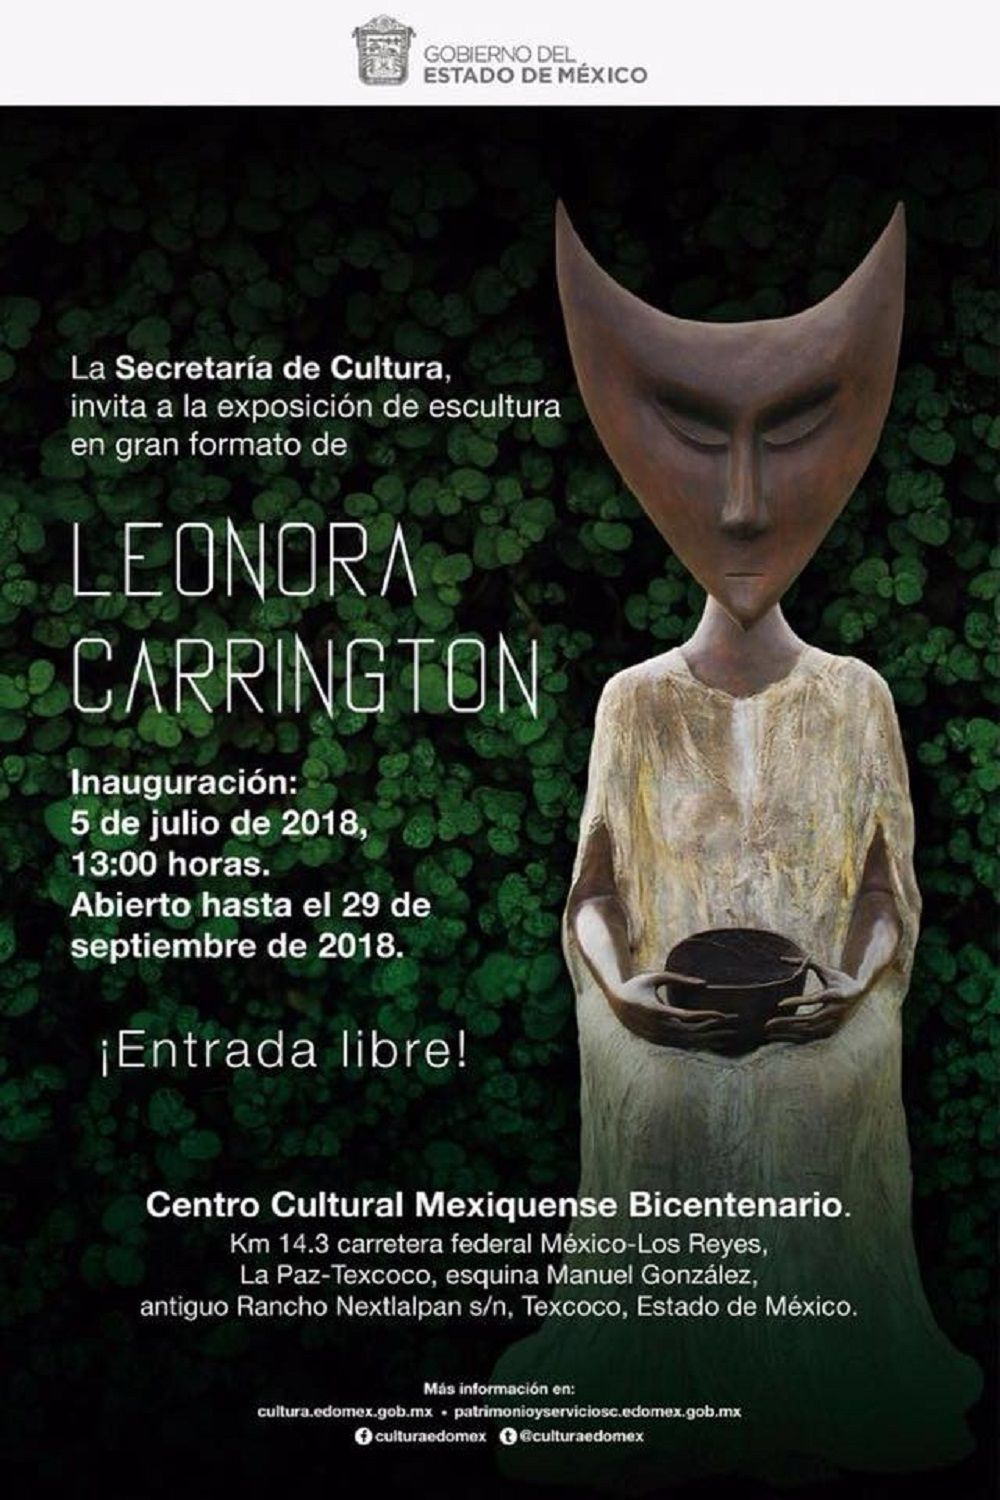 RECIBE CCMB EL SURREALISMO DE LEONORA CARRINGTON EN TEXCOCO